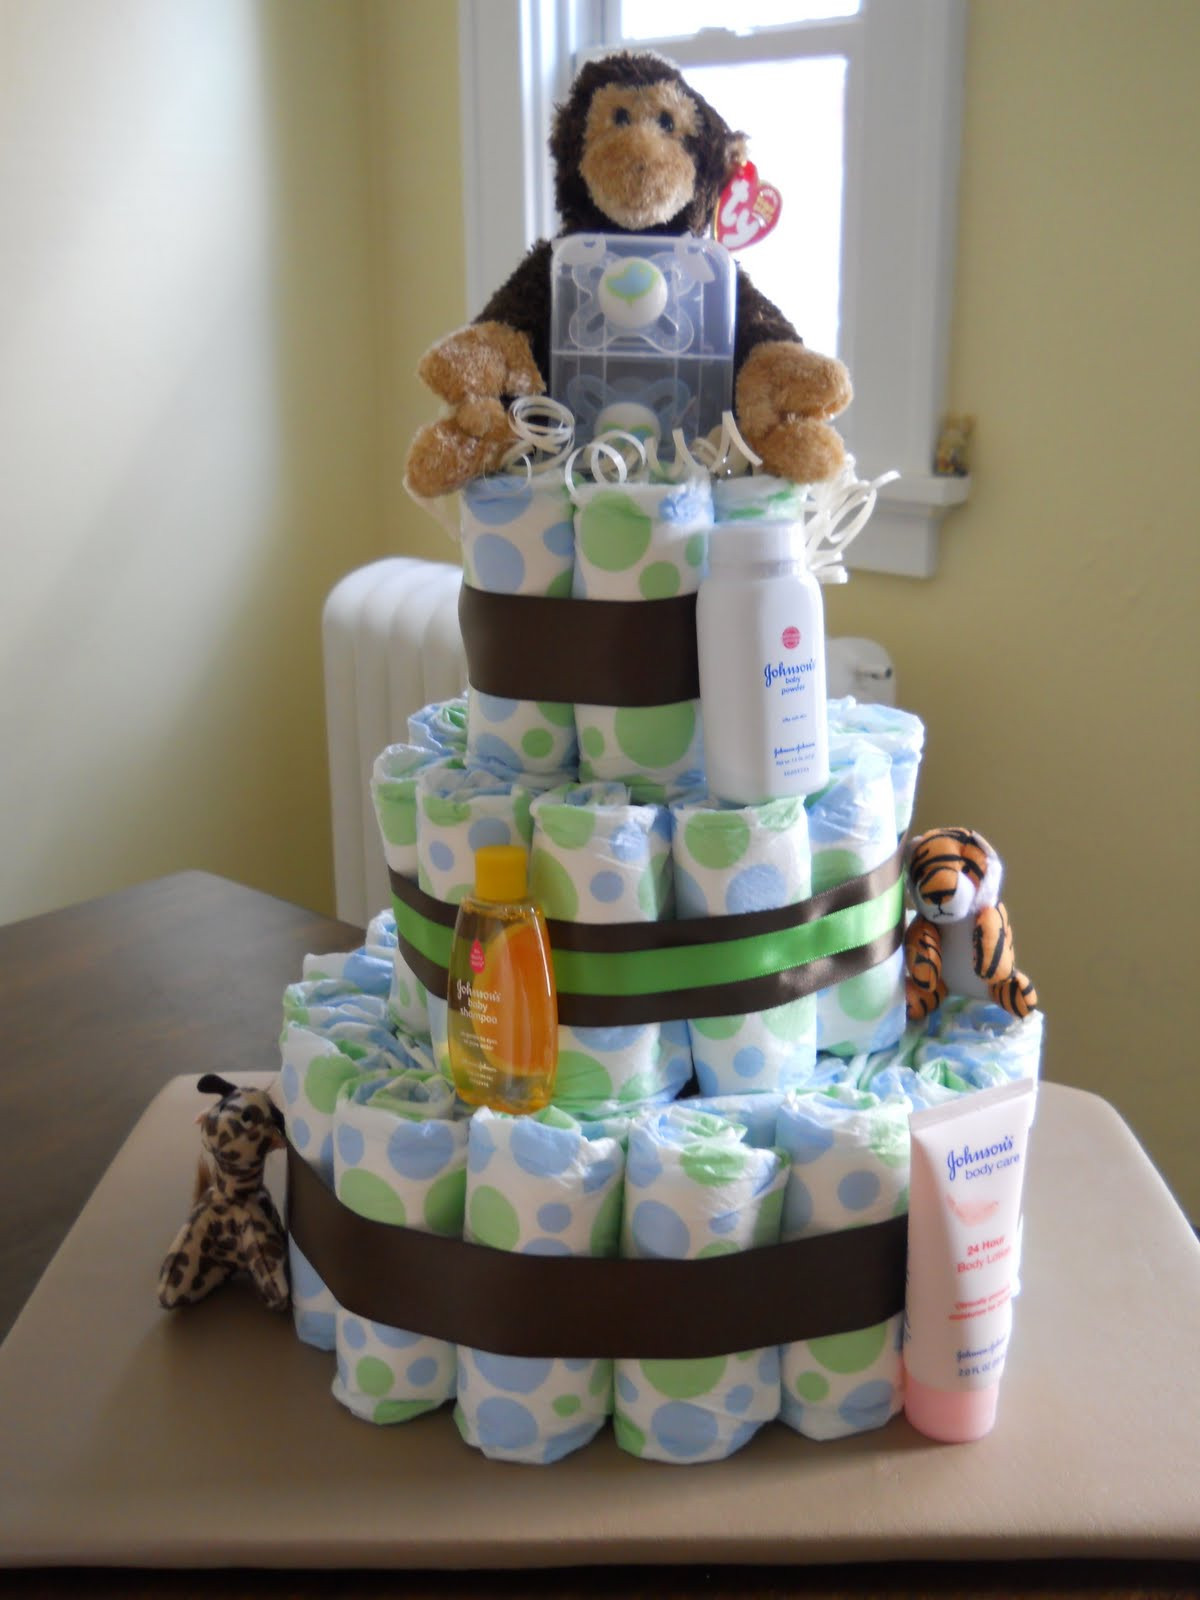 Best ideas about DIY Baby Diaper Cake . Save or Pin Be ing Mrs Juju DIY Diaper Cake Now.